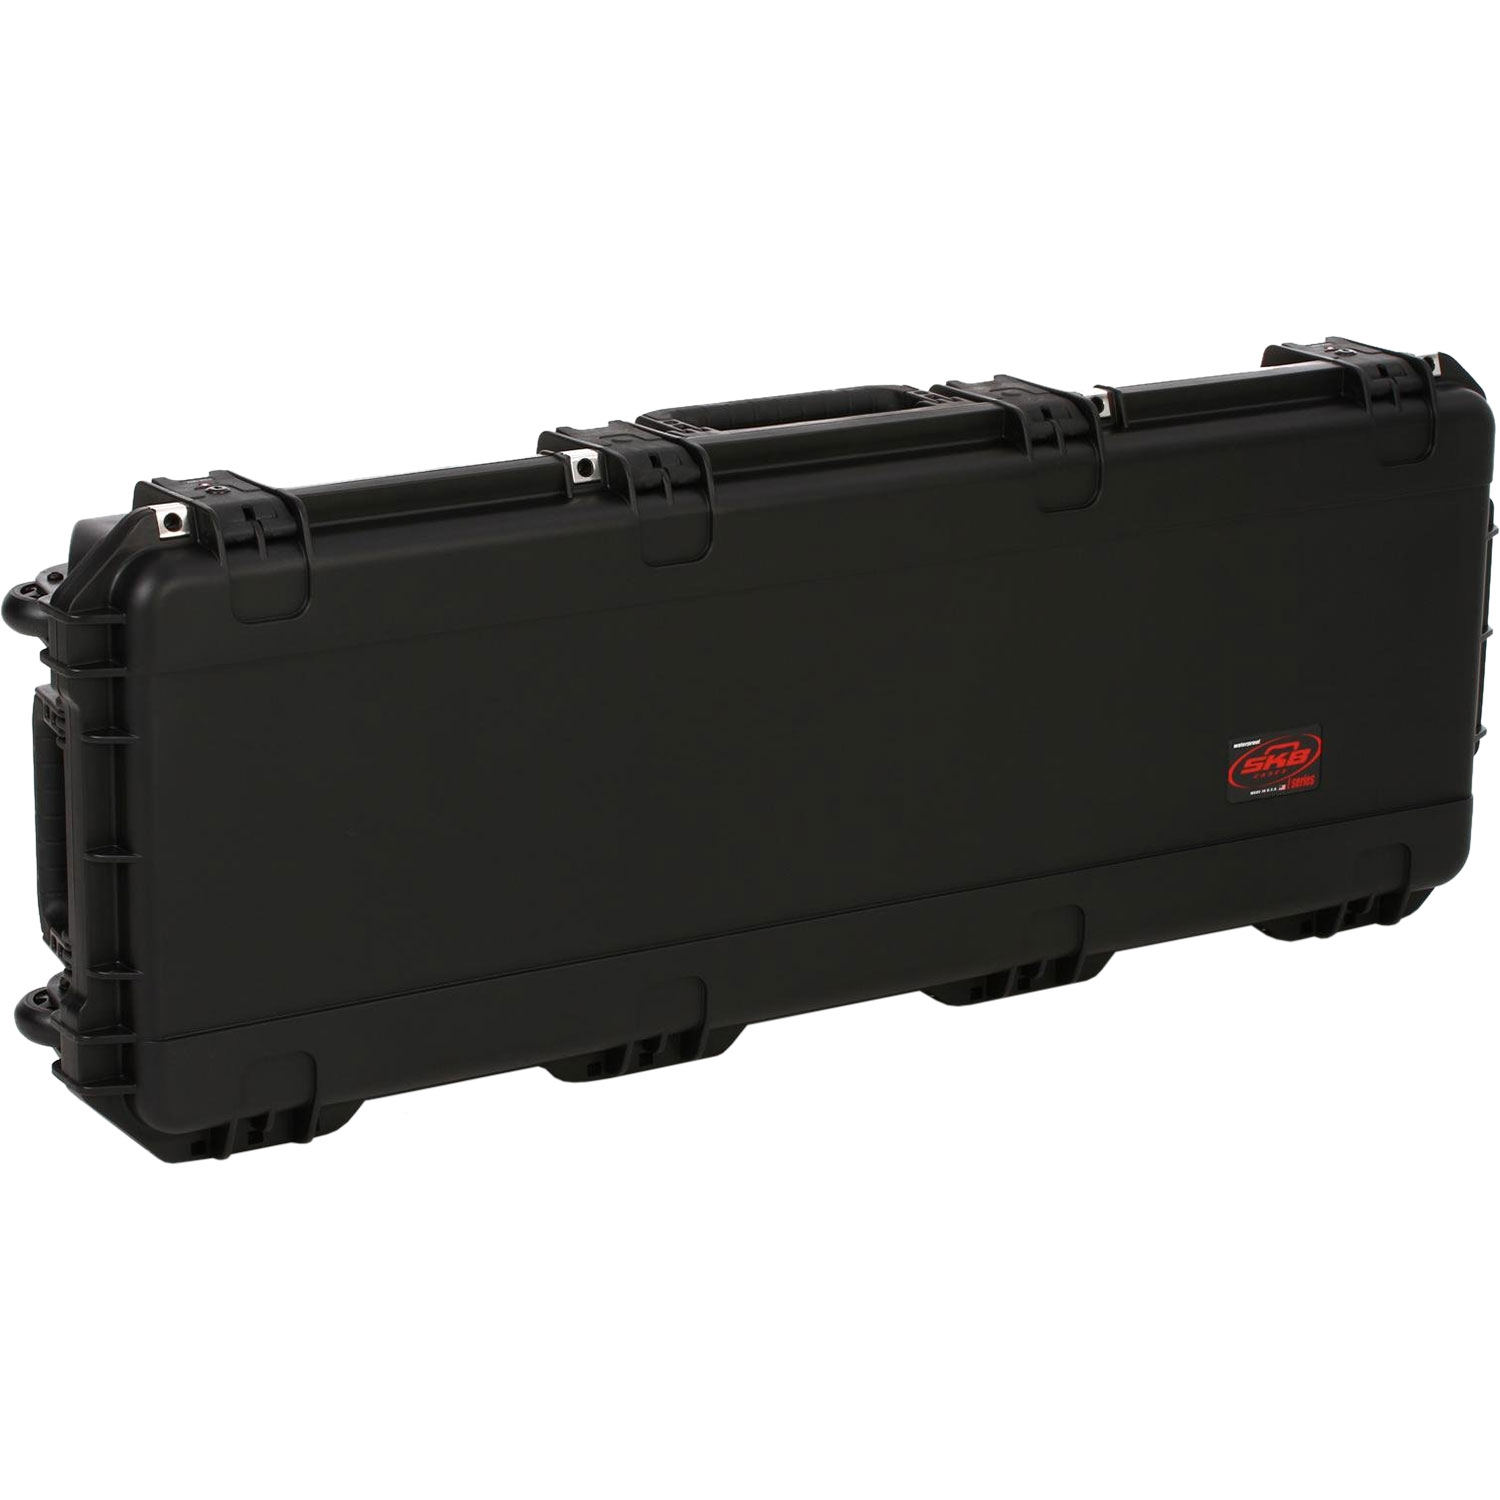 SKB iSeries Injection Molded 61-Key Narrow Keyboard Case